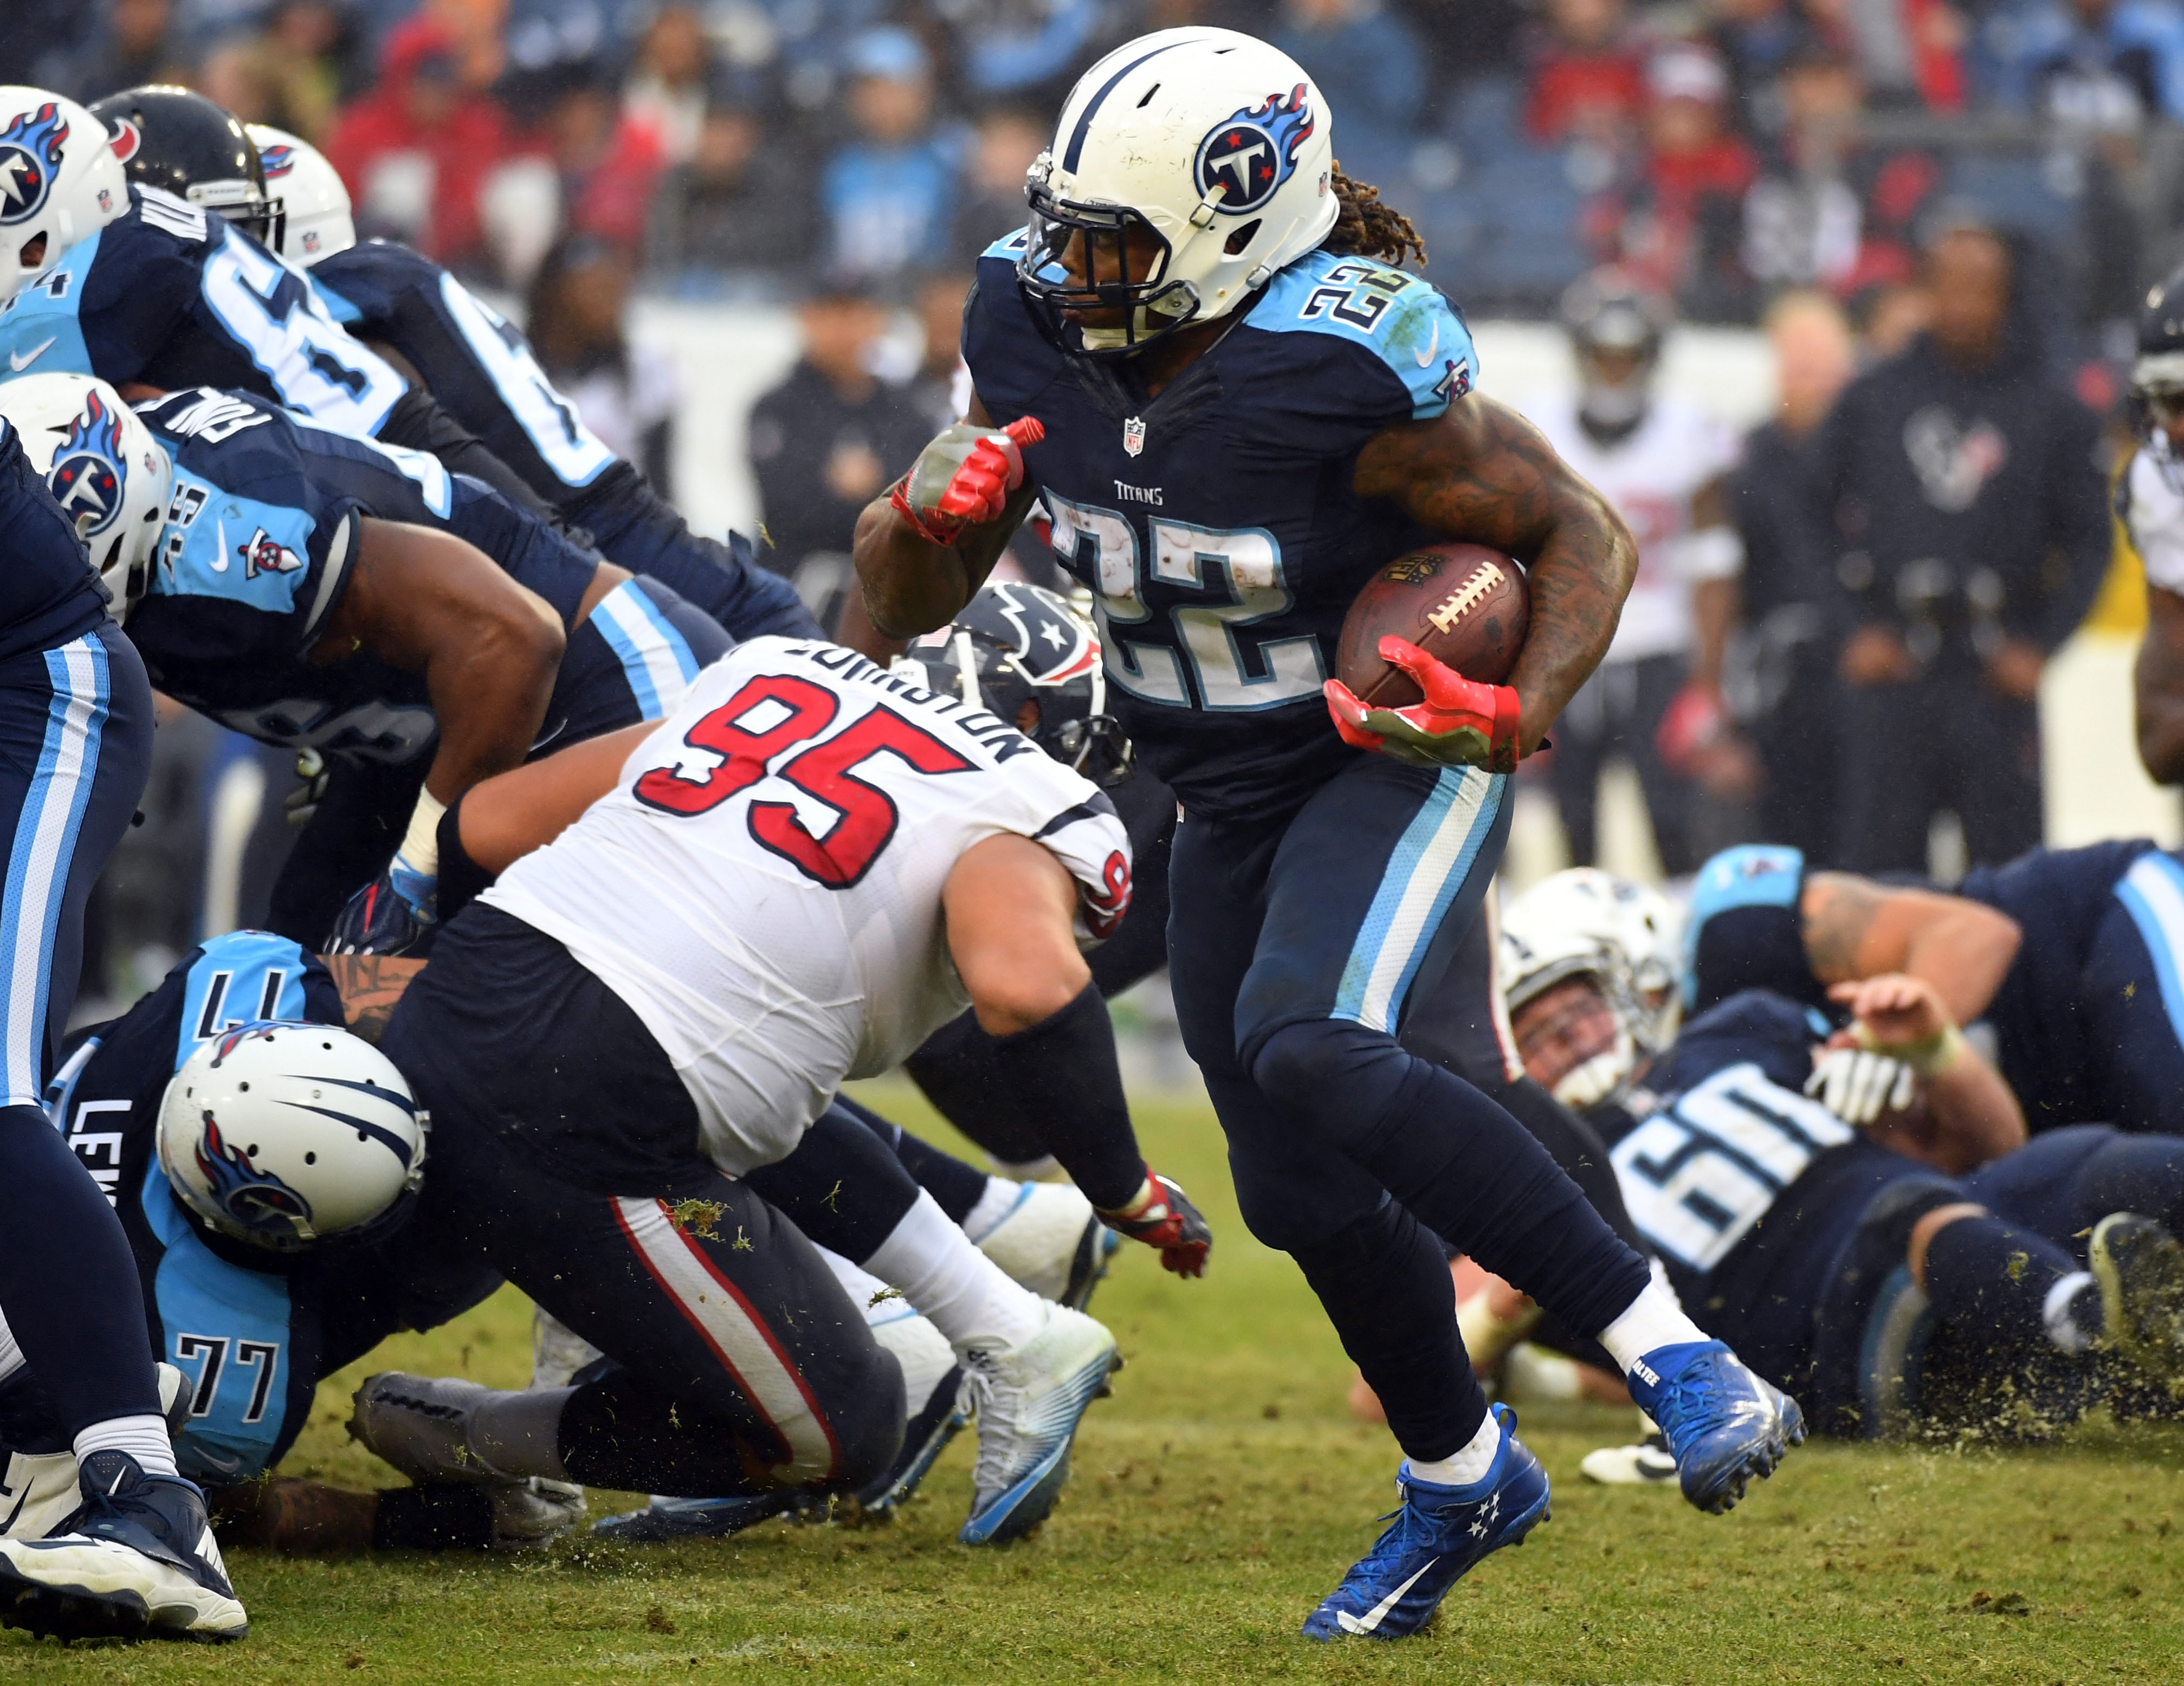 9781895-nfl-houston-texans-at-tennessee-titans